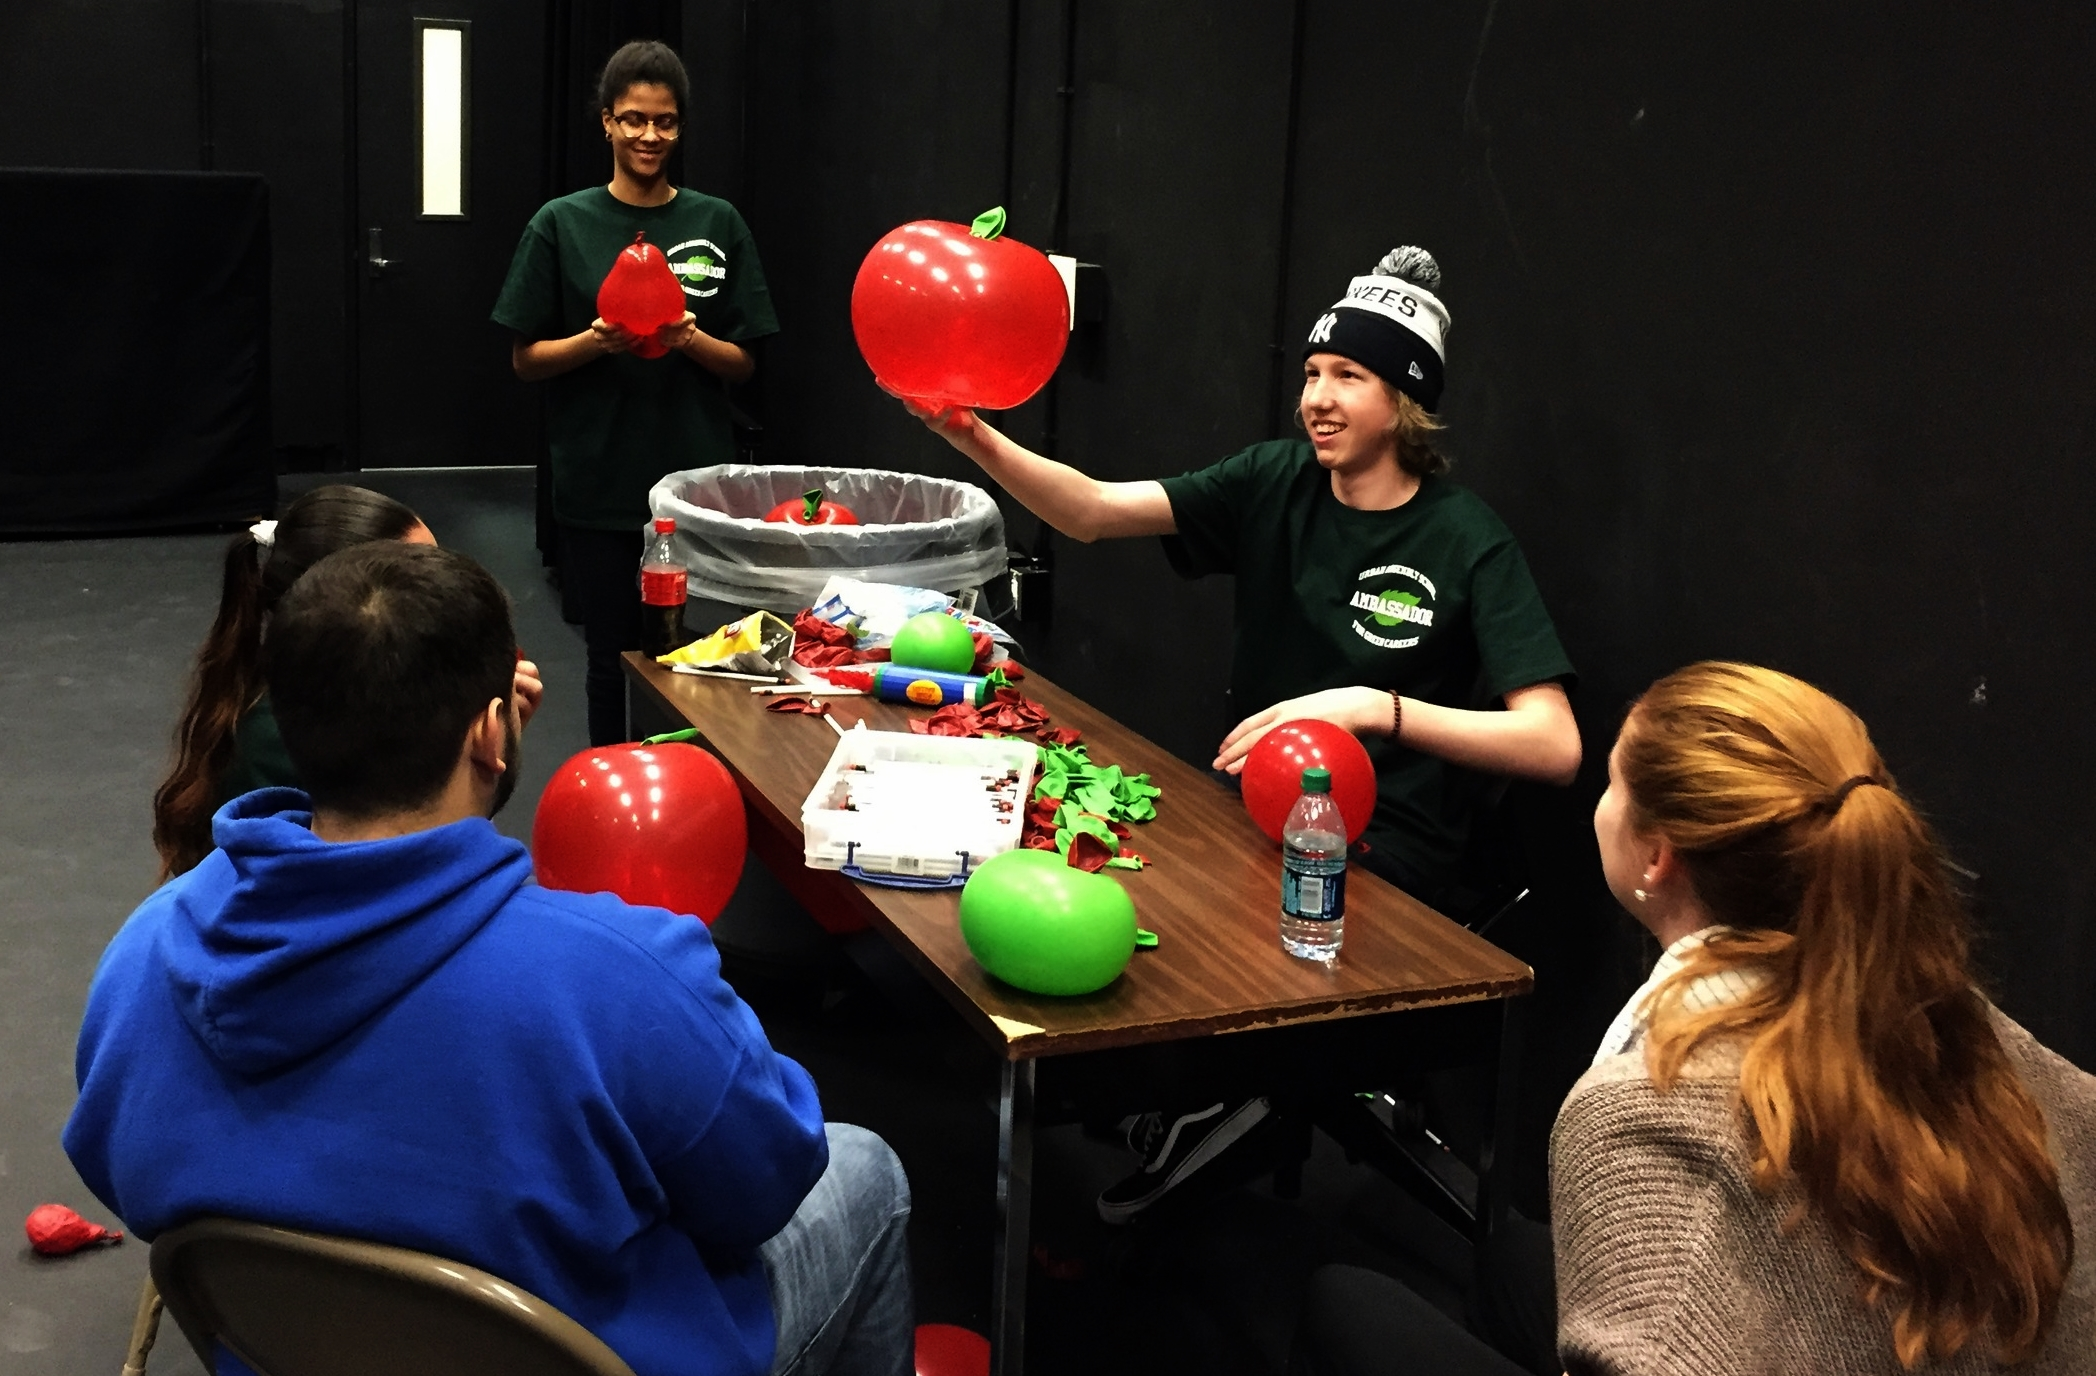 UAGC Ambassadors making balloon apples for expo participants with Barnes & Noble materials